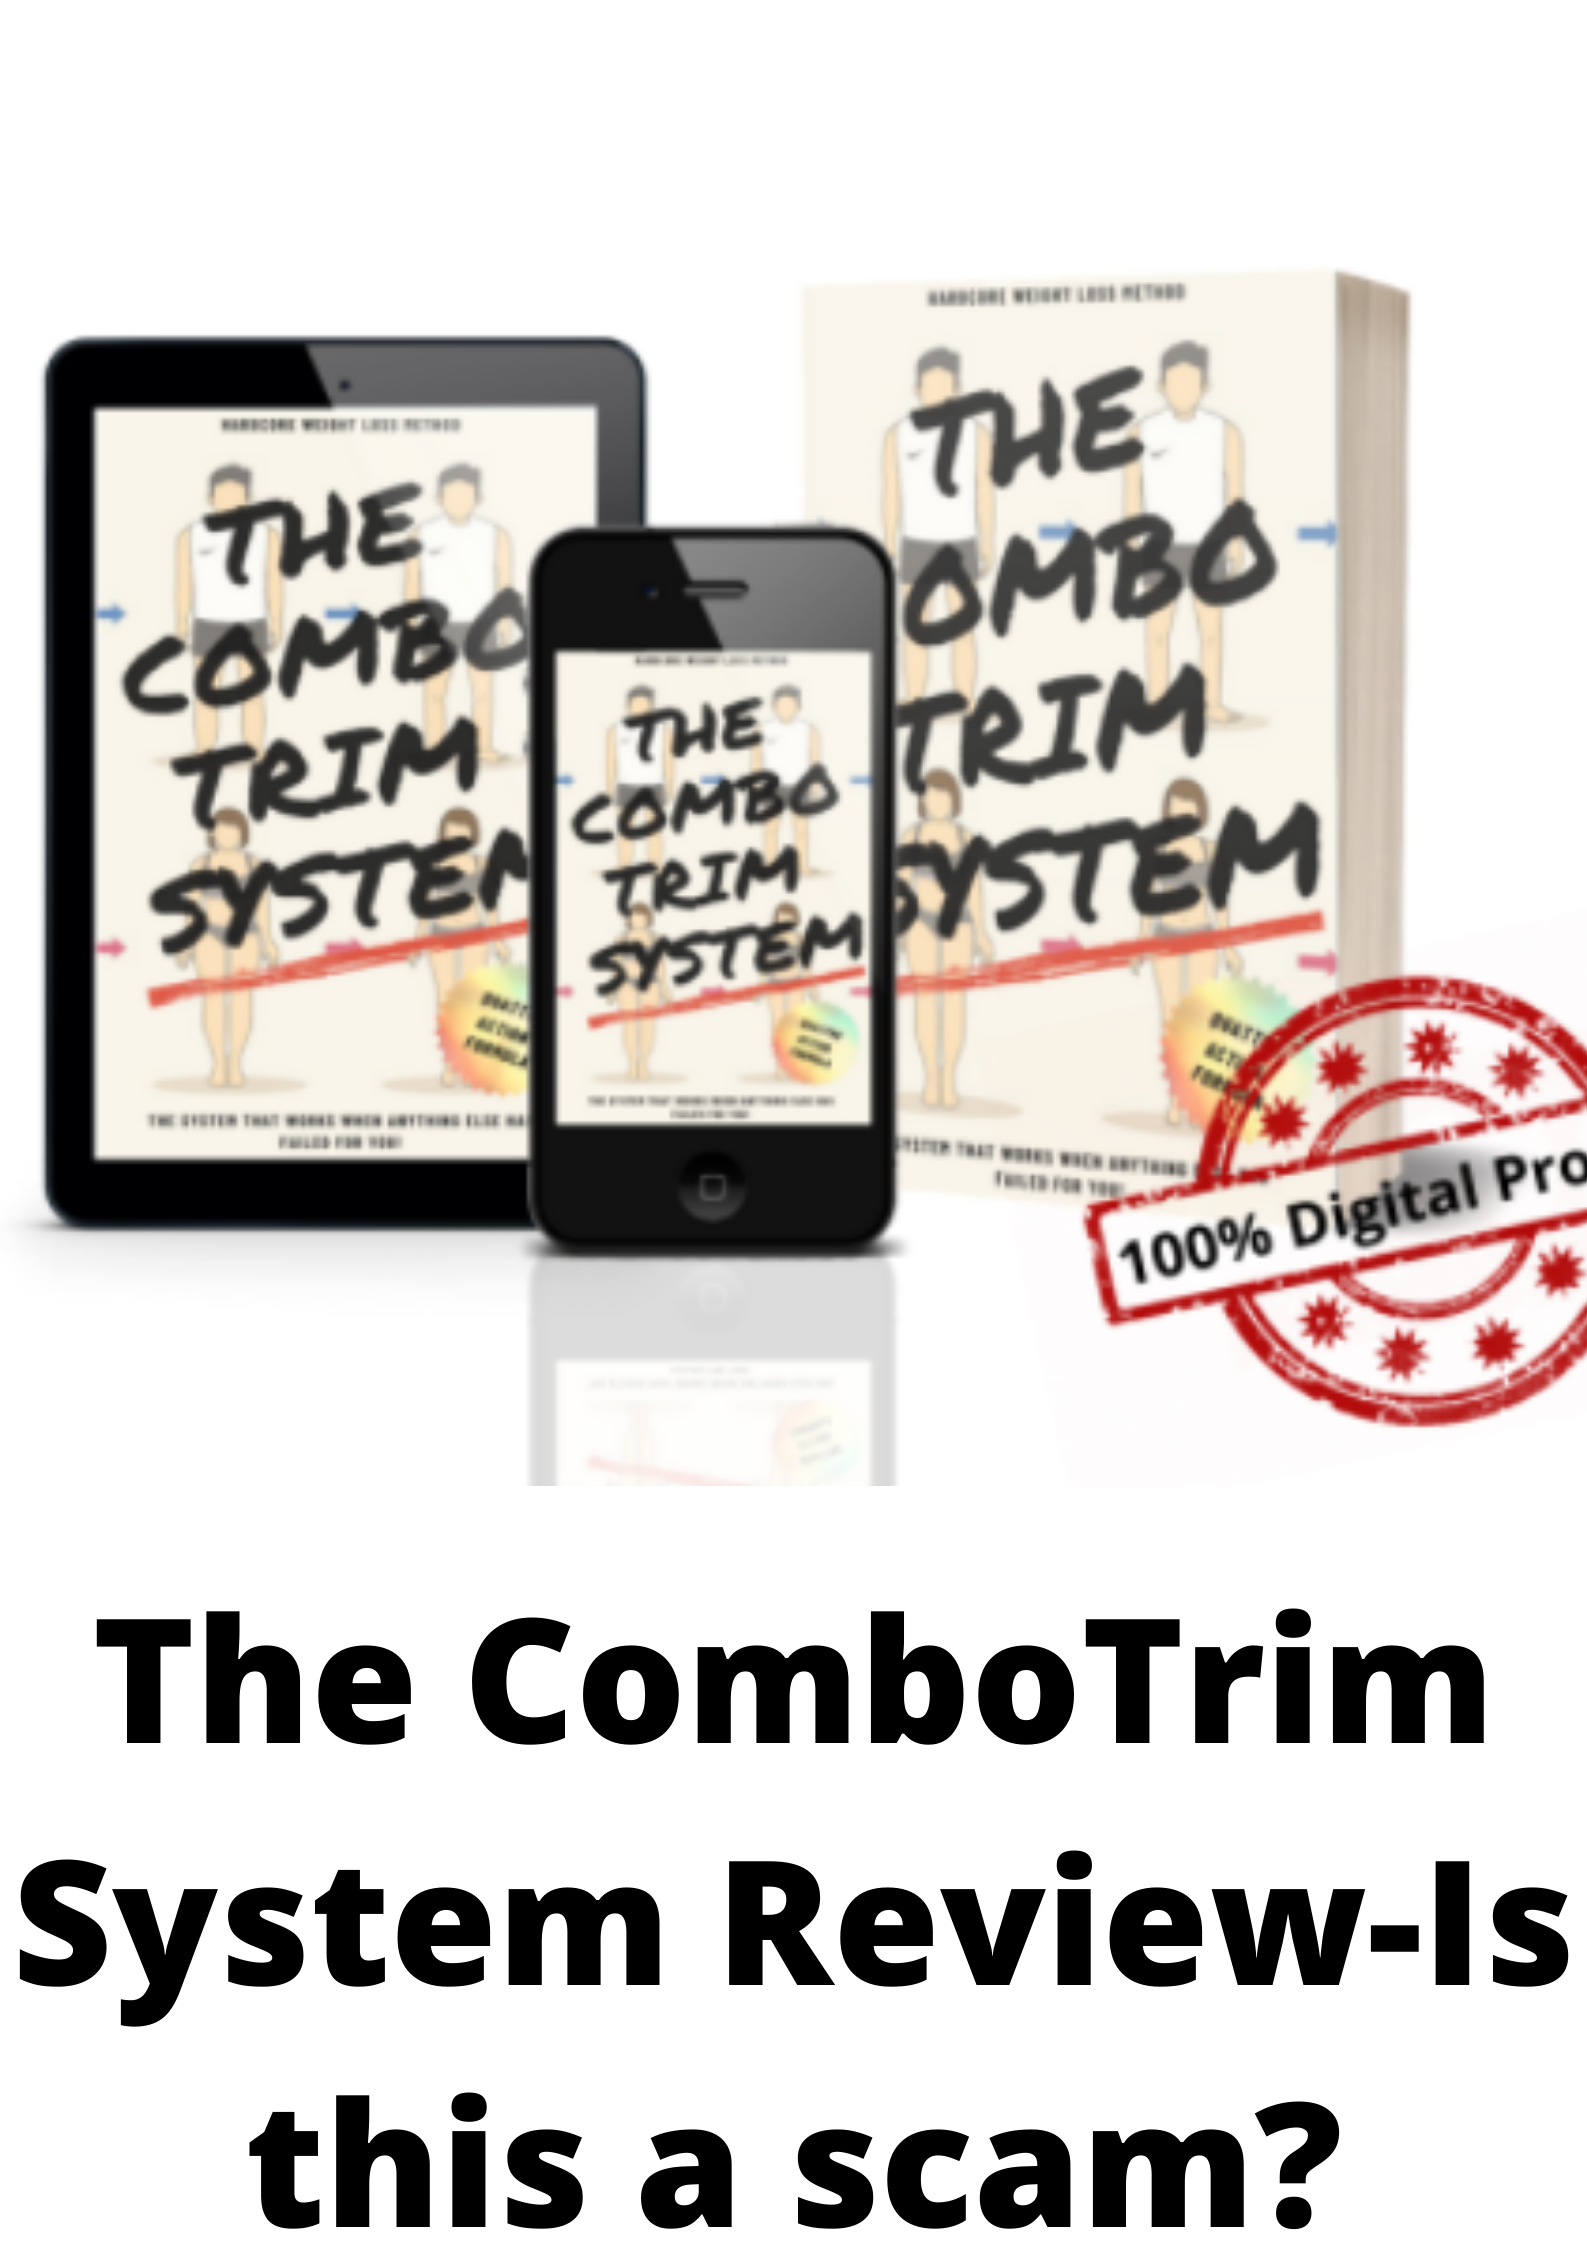 The Combotrim System Reviews- Is this a scam?